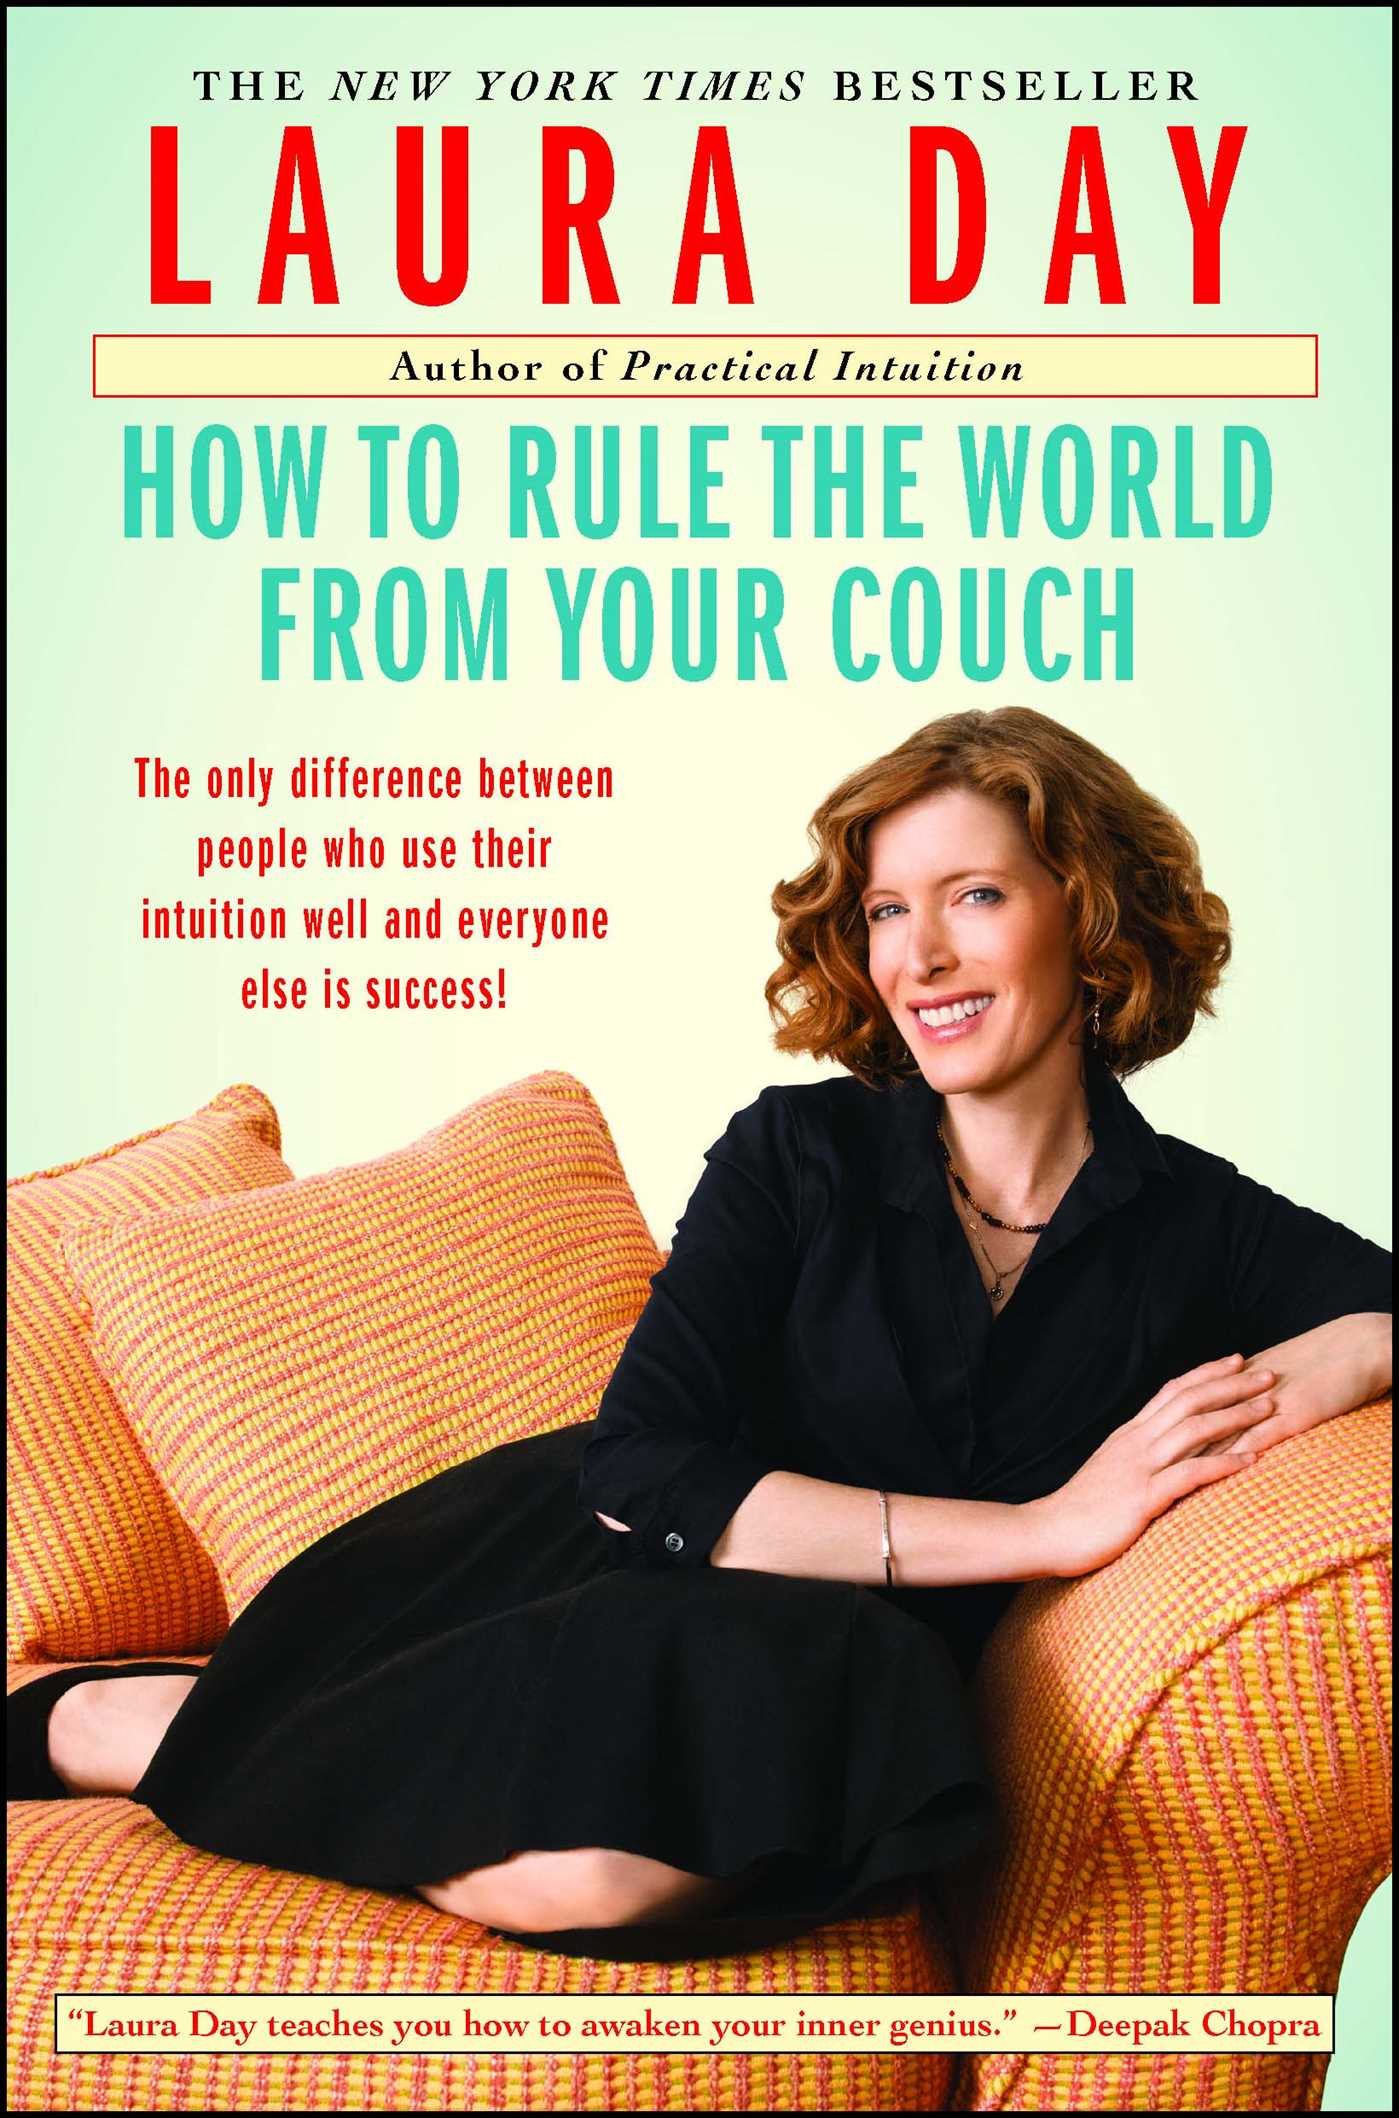 How-to-rule-the-world-from-your-couch-9781439123584_hr